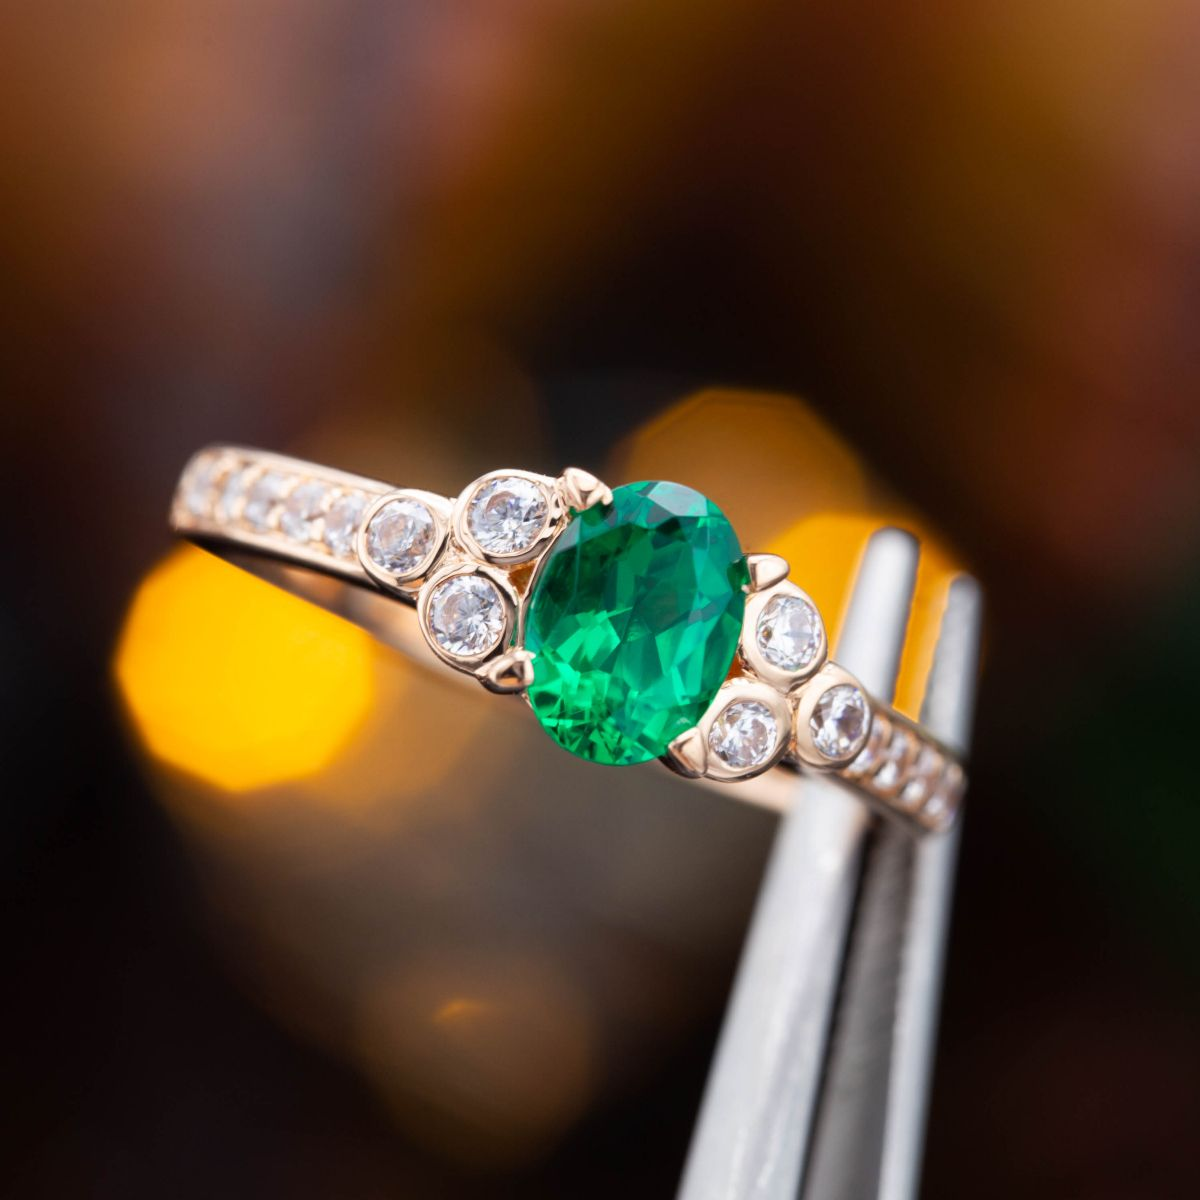 oval-cut emerald side stone - engagement ring setting